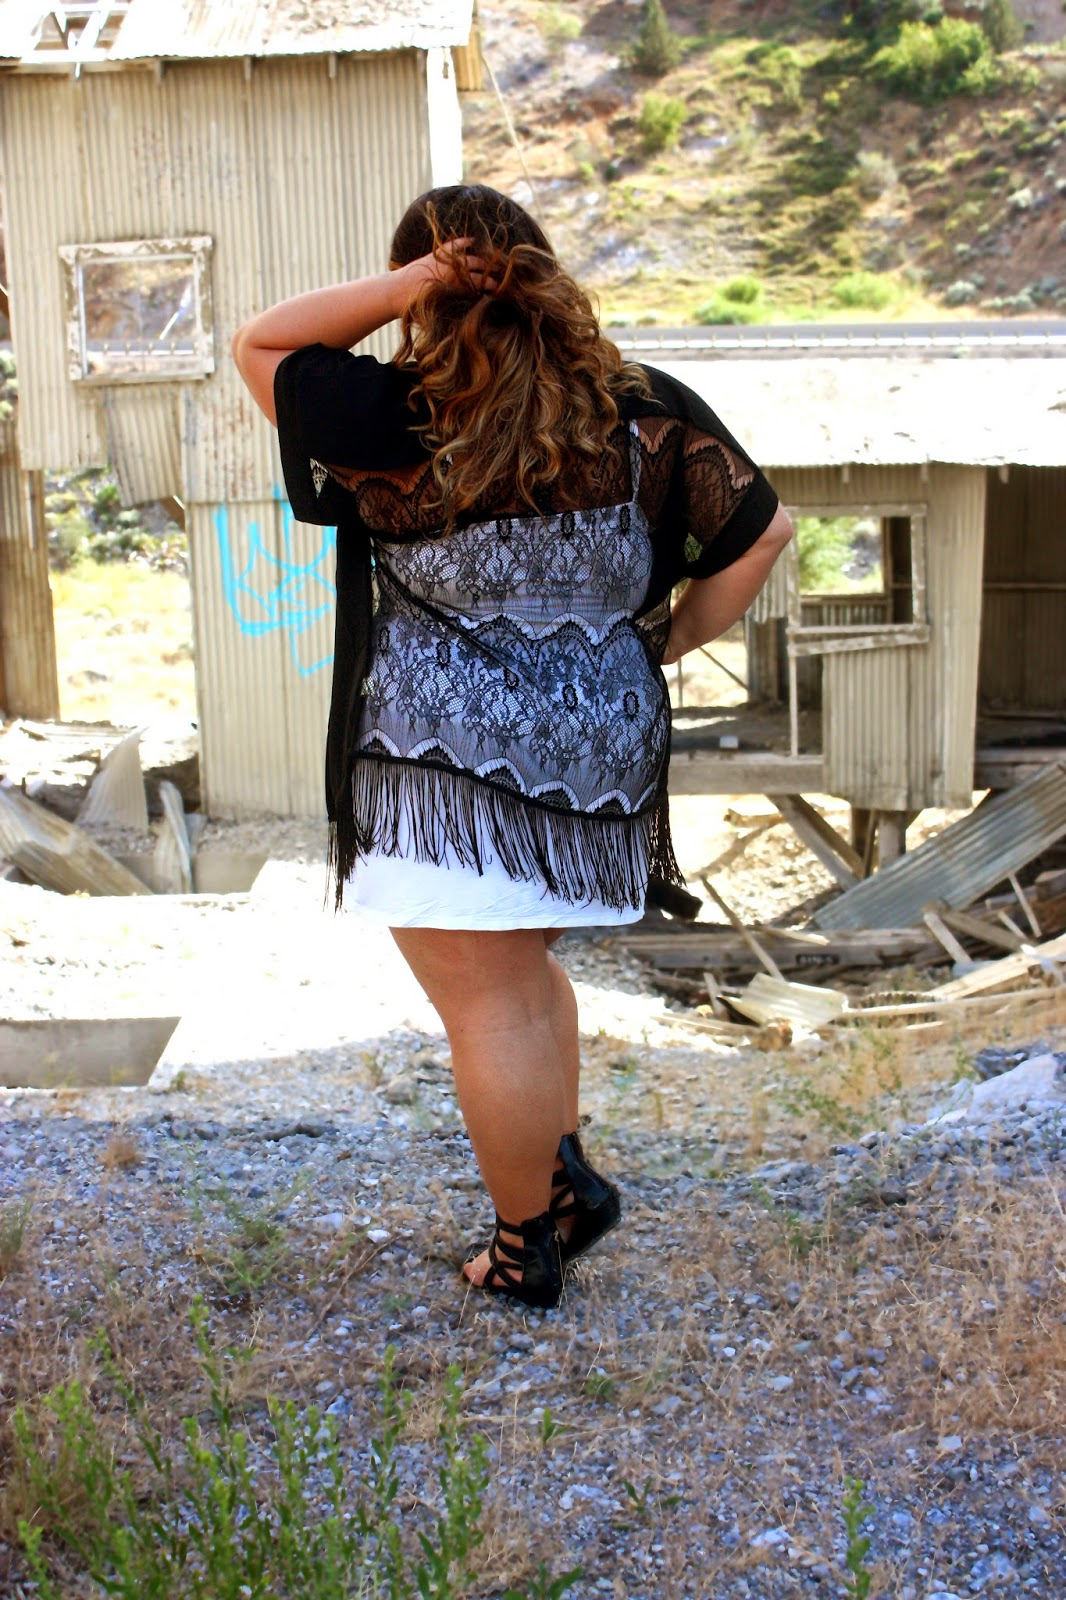 what to wear on a road trip, middle of nowhere, tinahse, 2on, summer fashion, country style, natalie craig, natalie in the city, white dress, fringe, lace, louis vuitton backpack, gladiator sandals, fashion road trip, plus size fashion blogger, curvy fashionista, thick girls, curly hair ombre, see through, statement jewelry